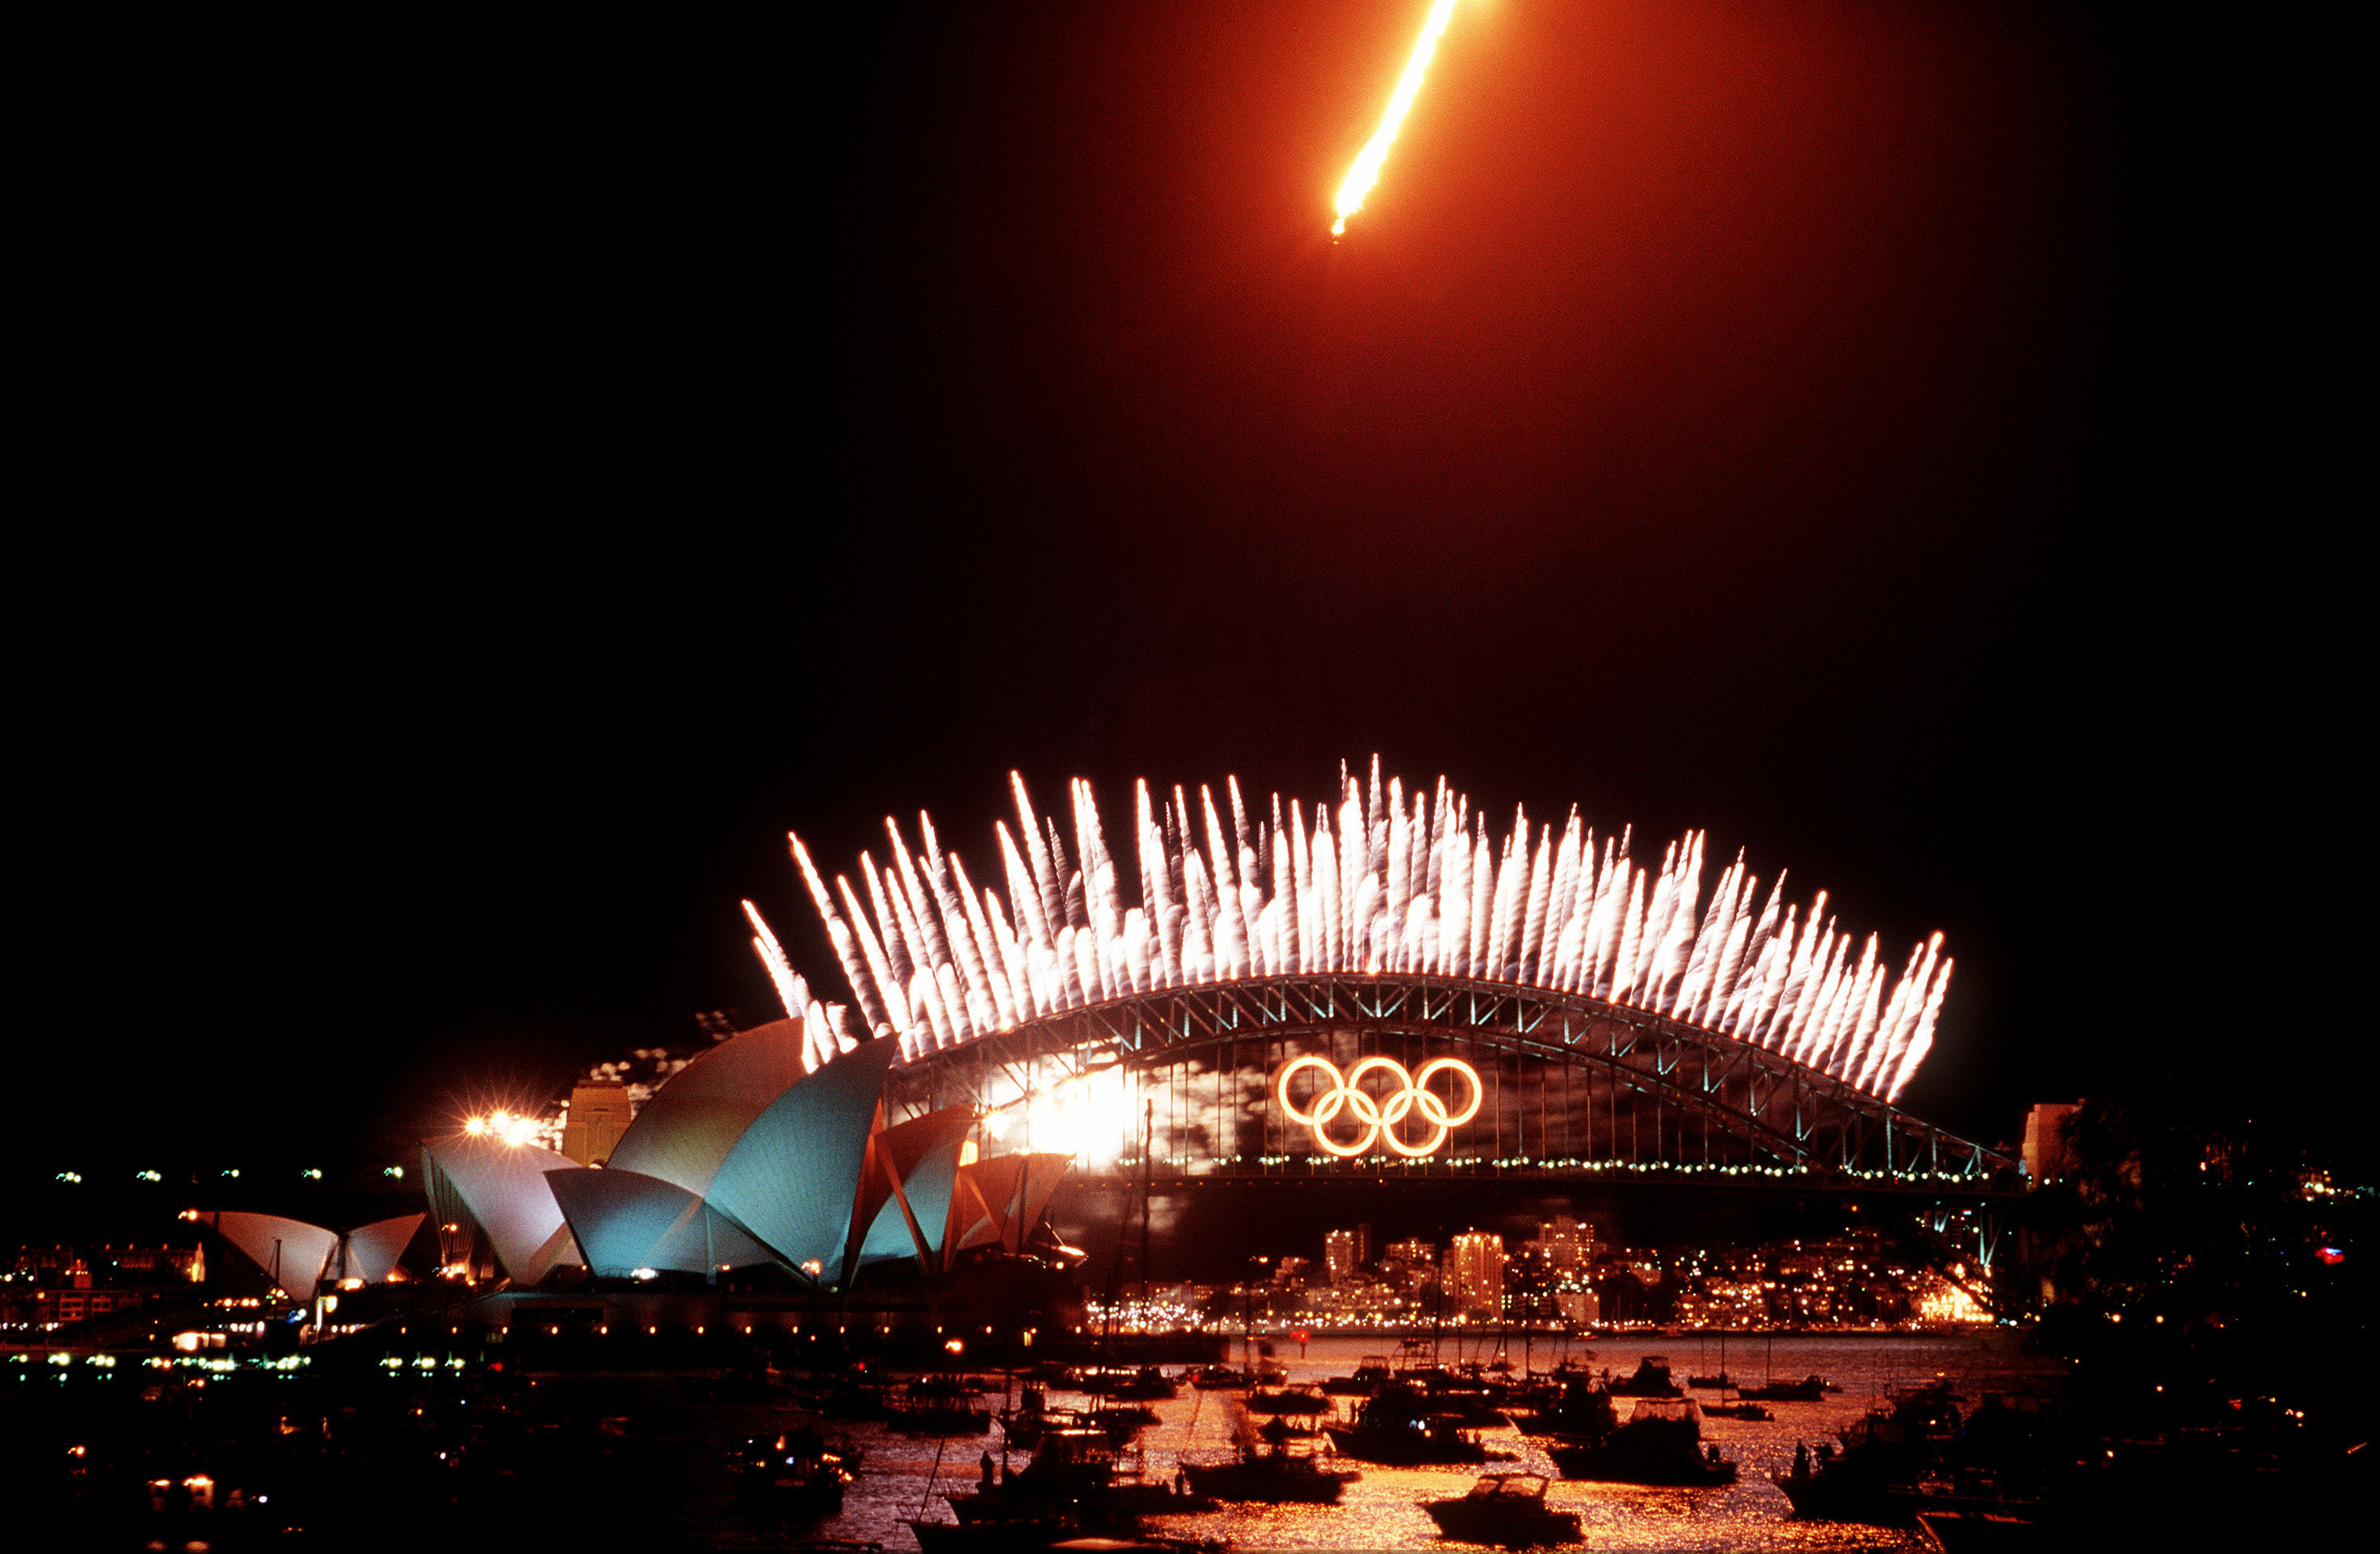 sport added to 2000 olympics in sydney - photo#4